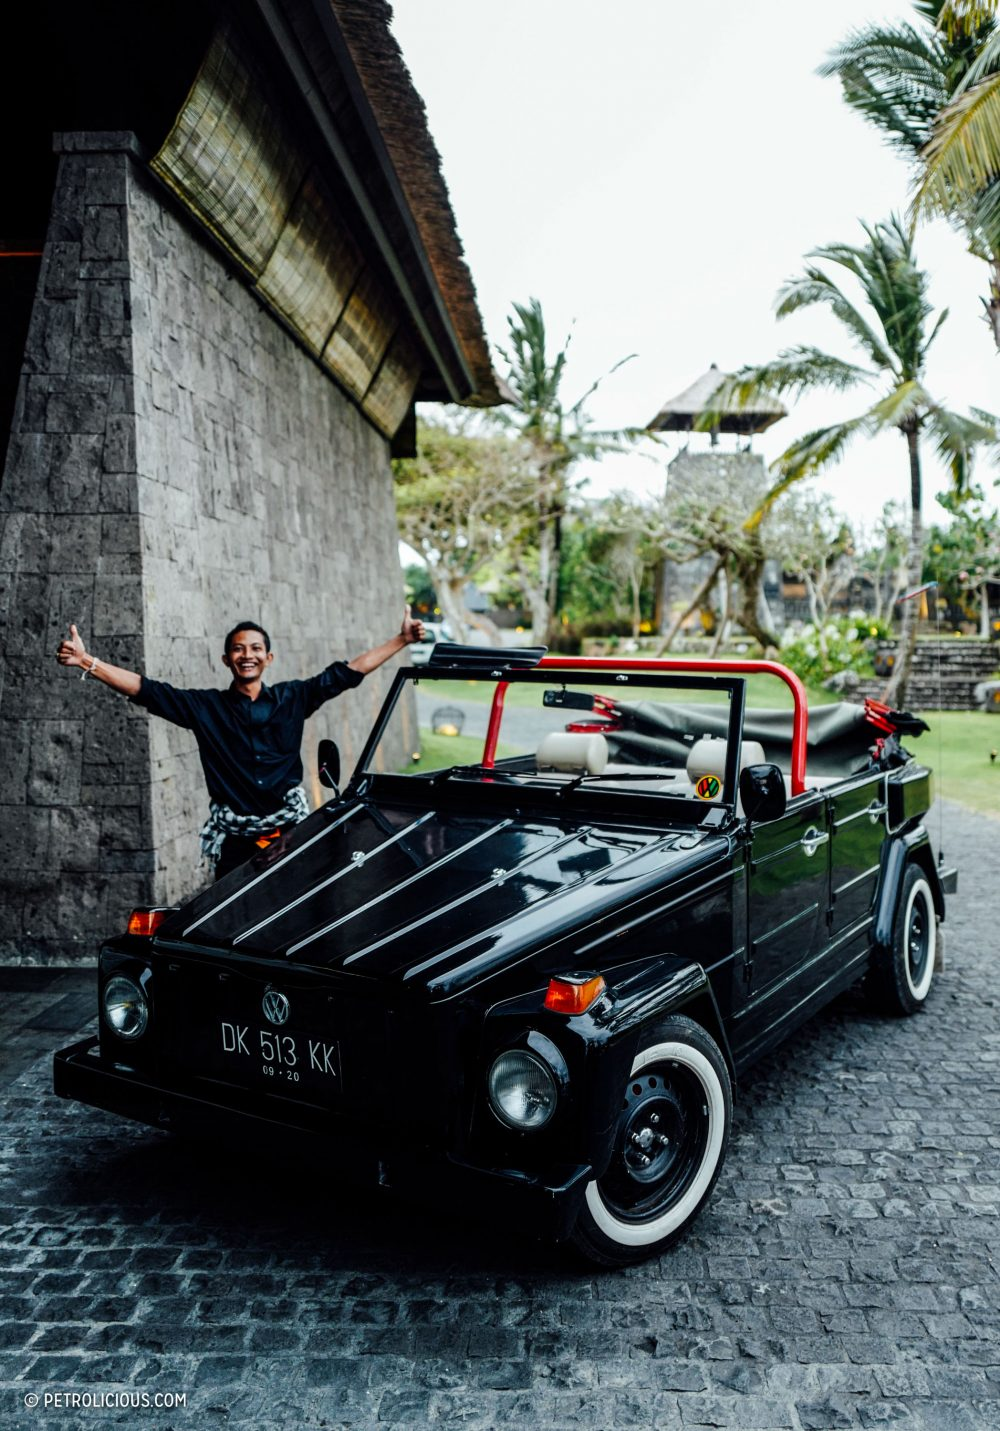 Chasing Endangered Automotive Species In Bali Indonesia Petrolicious